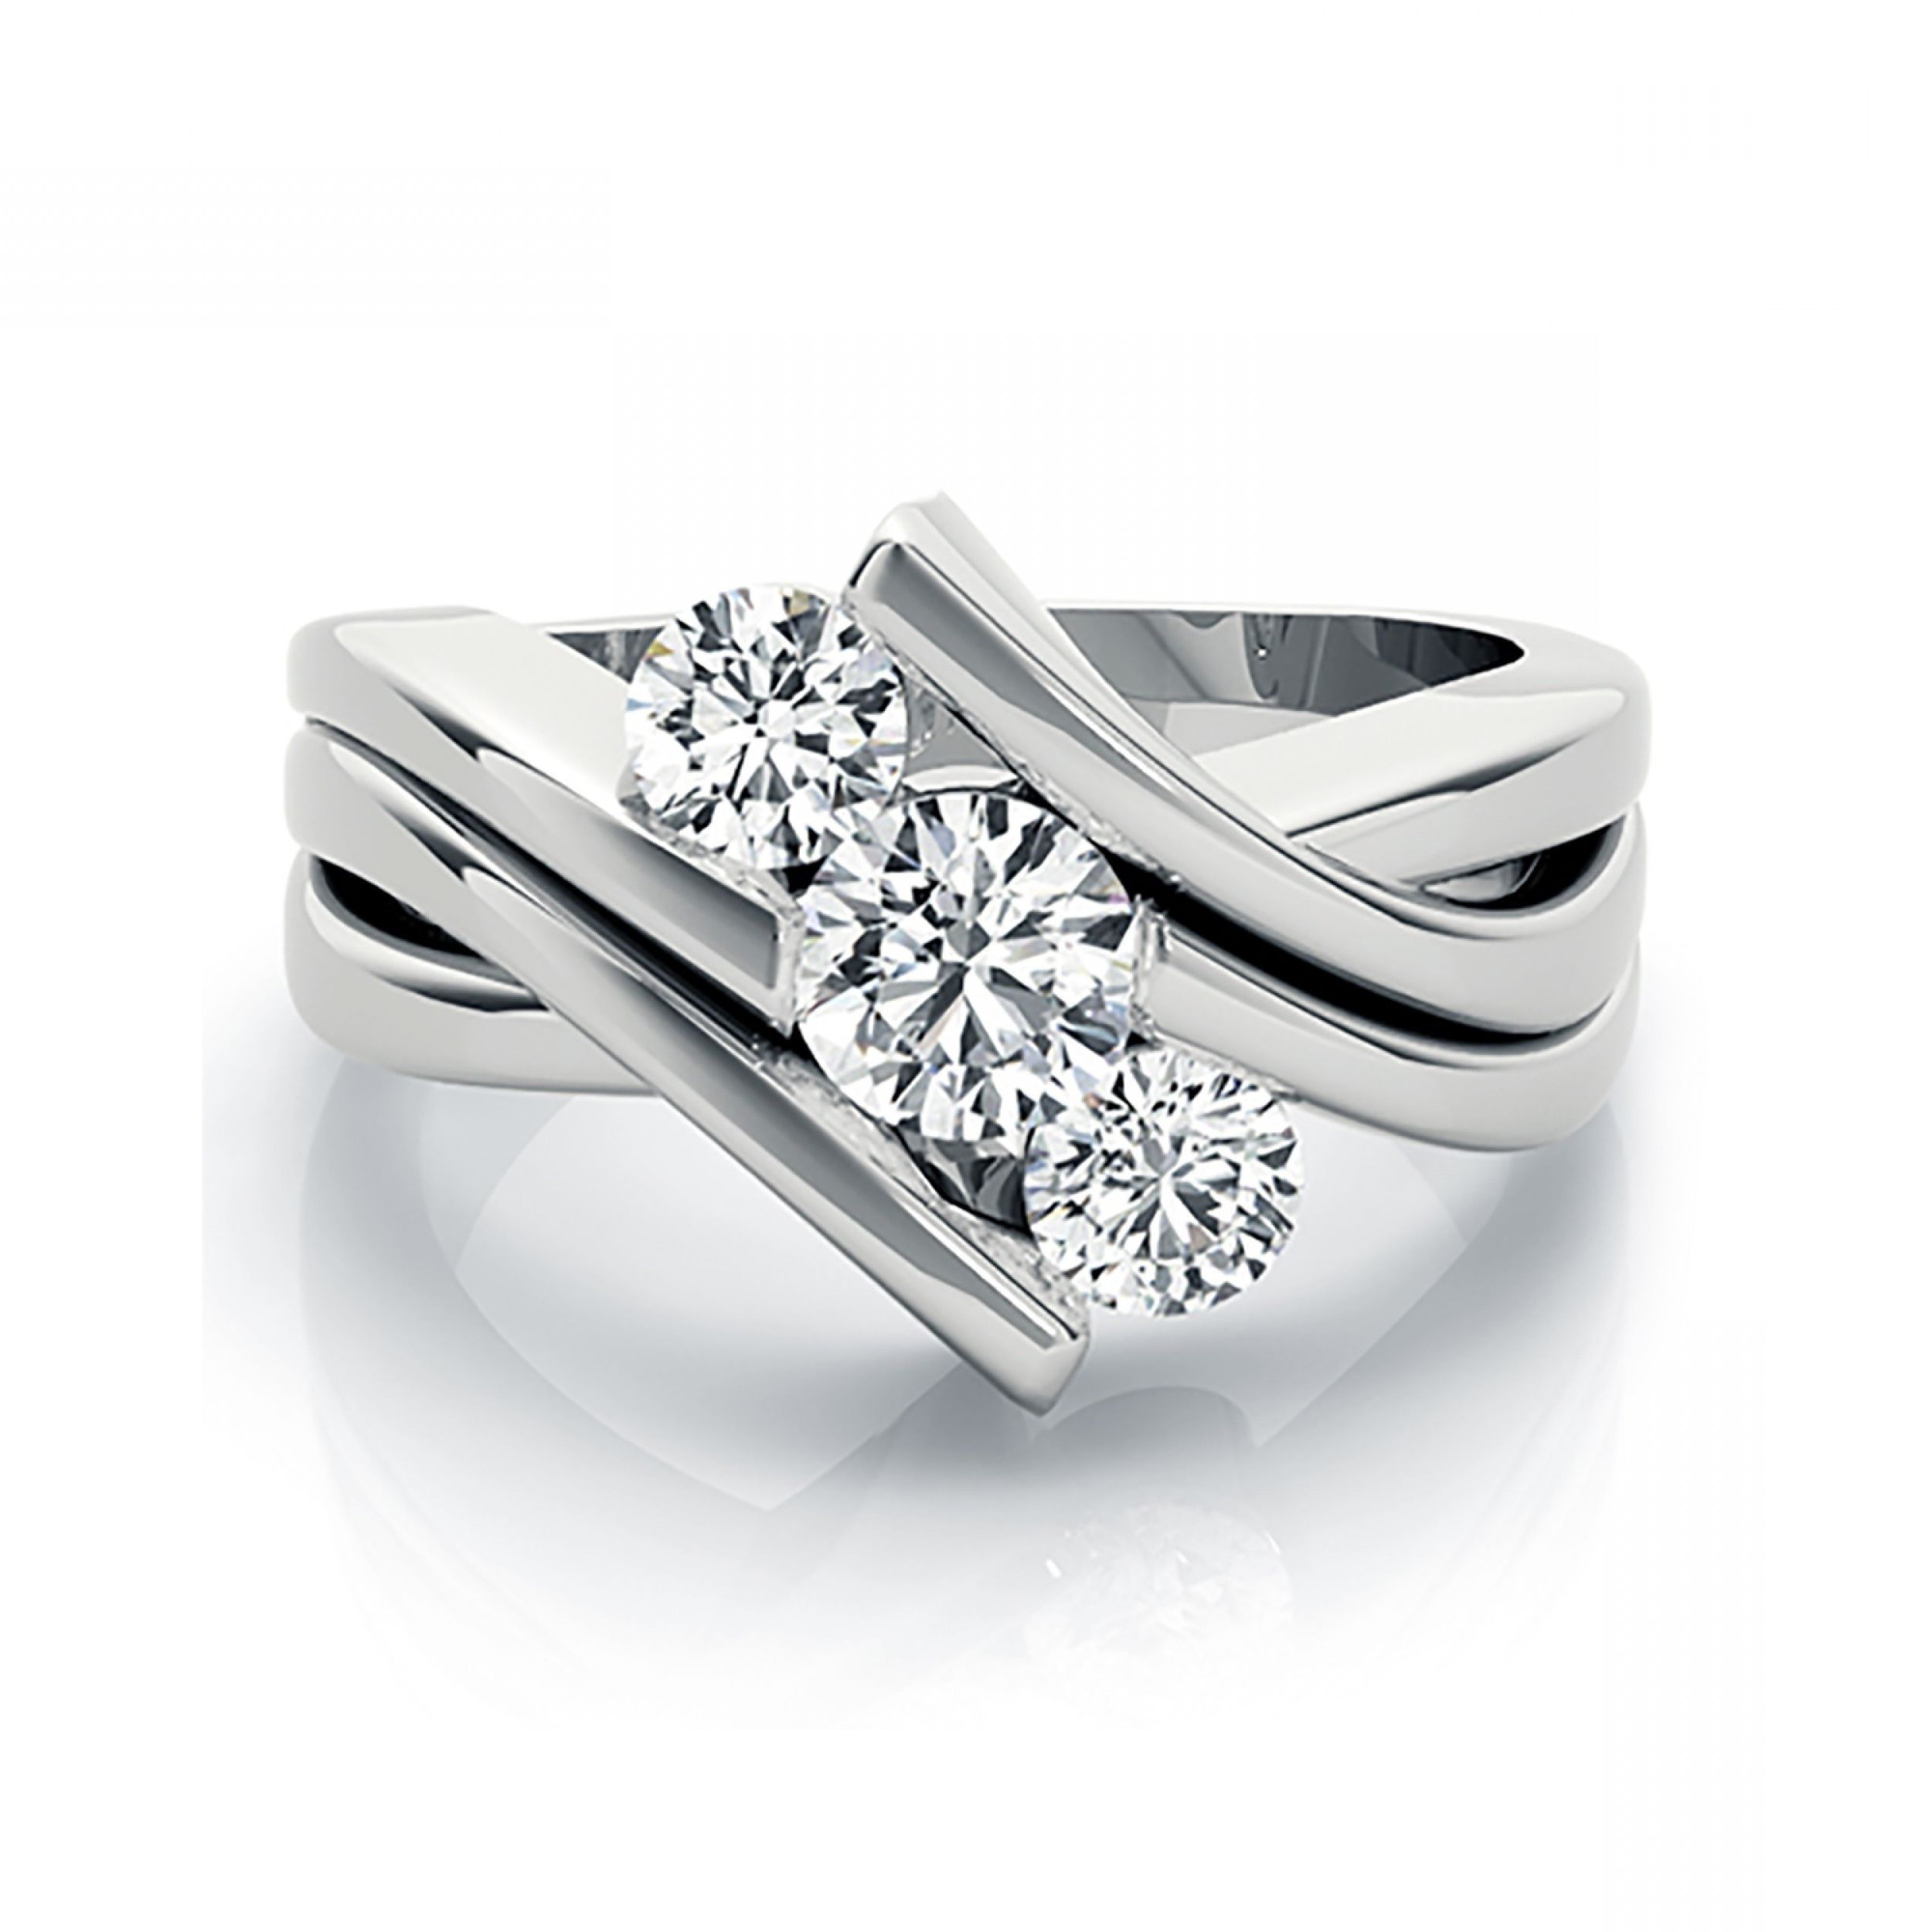 jewellery with custom engagement ring pave keezing rings diamond settings kreations boston